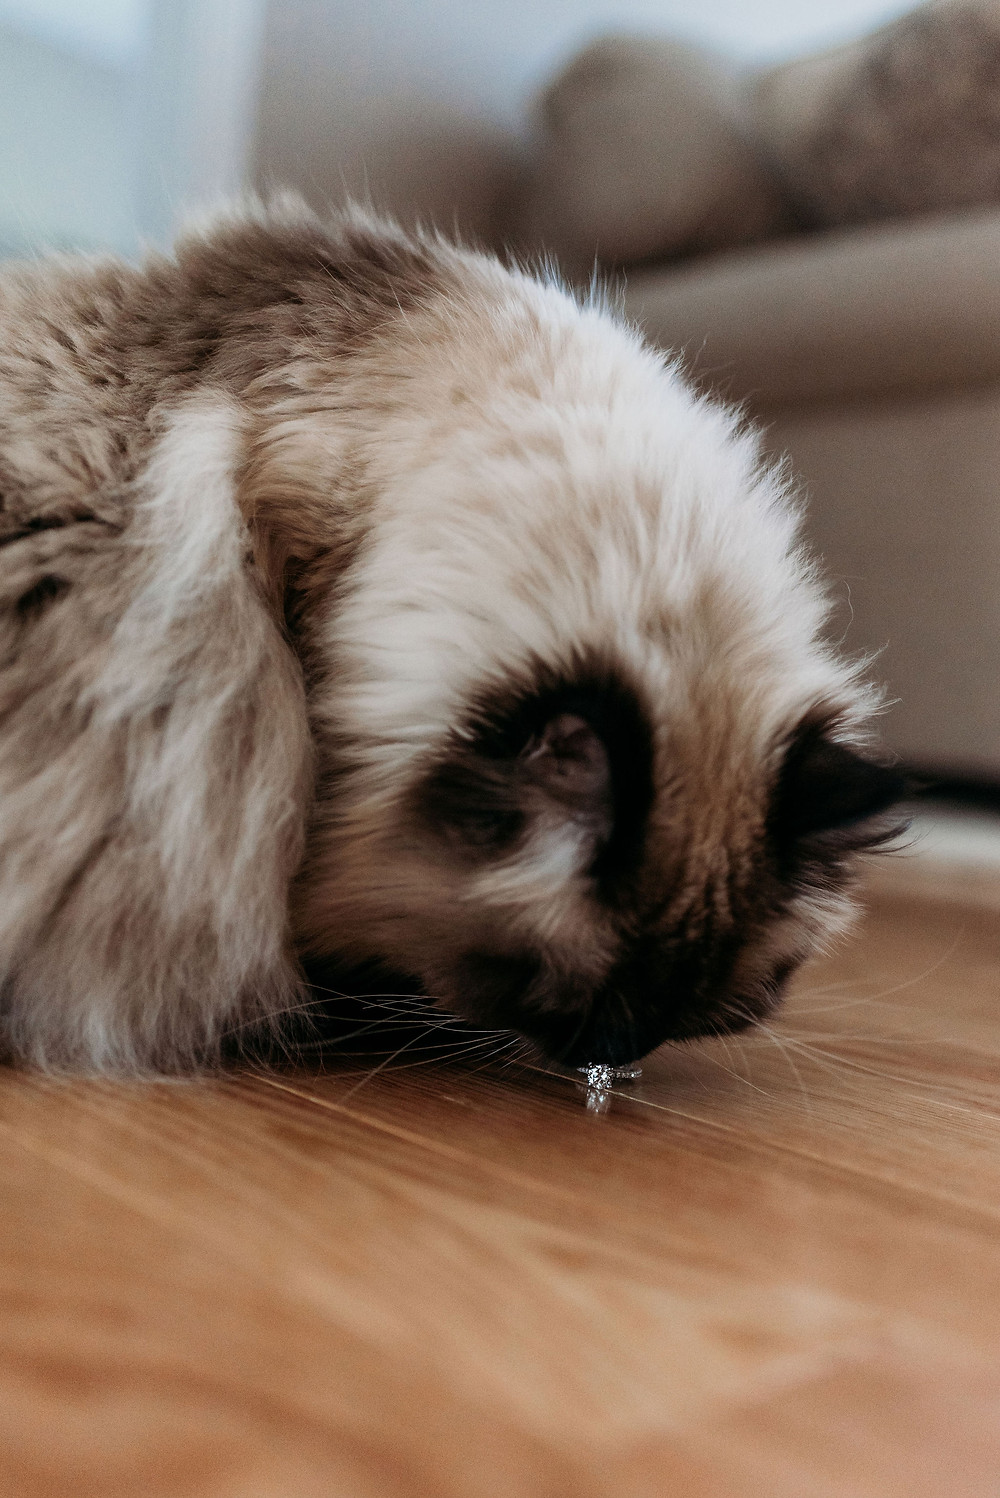 cat with engagement ring